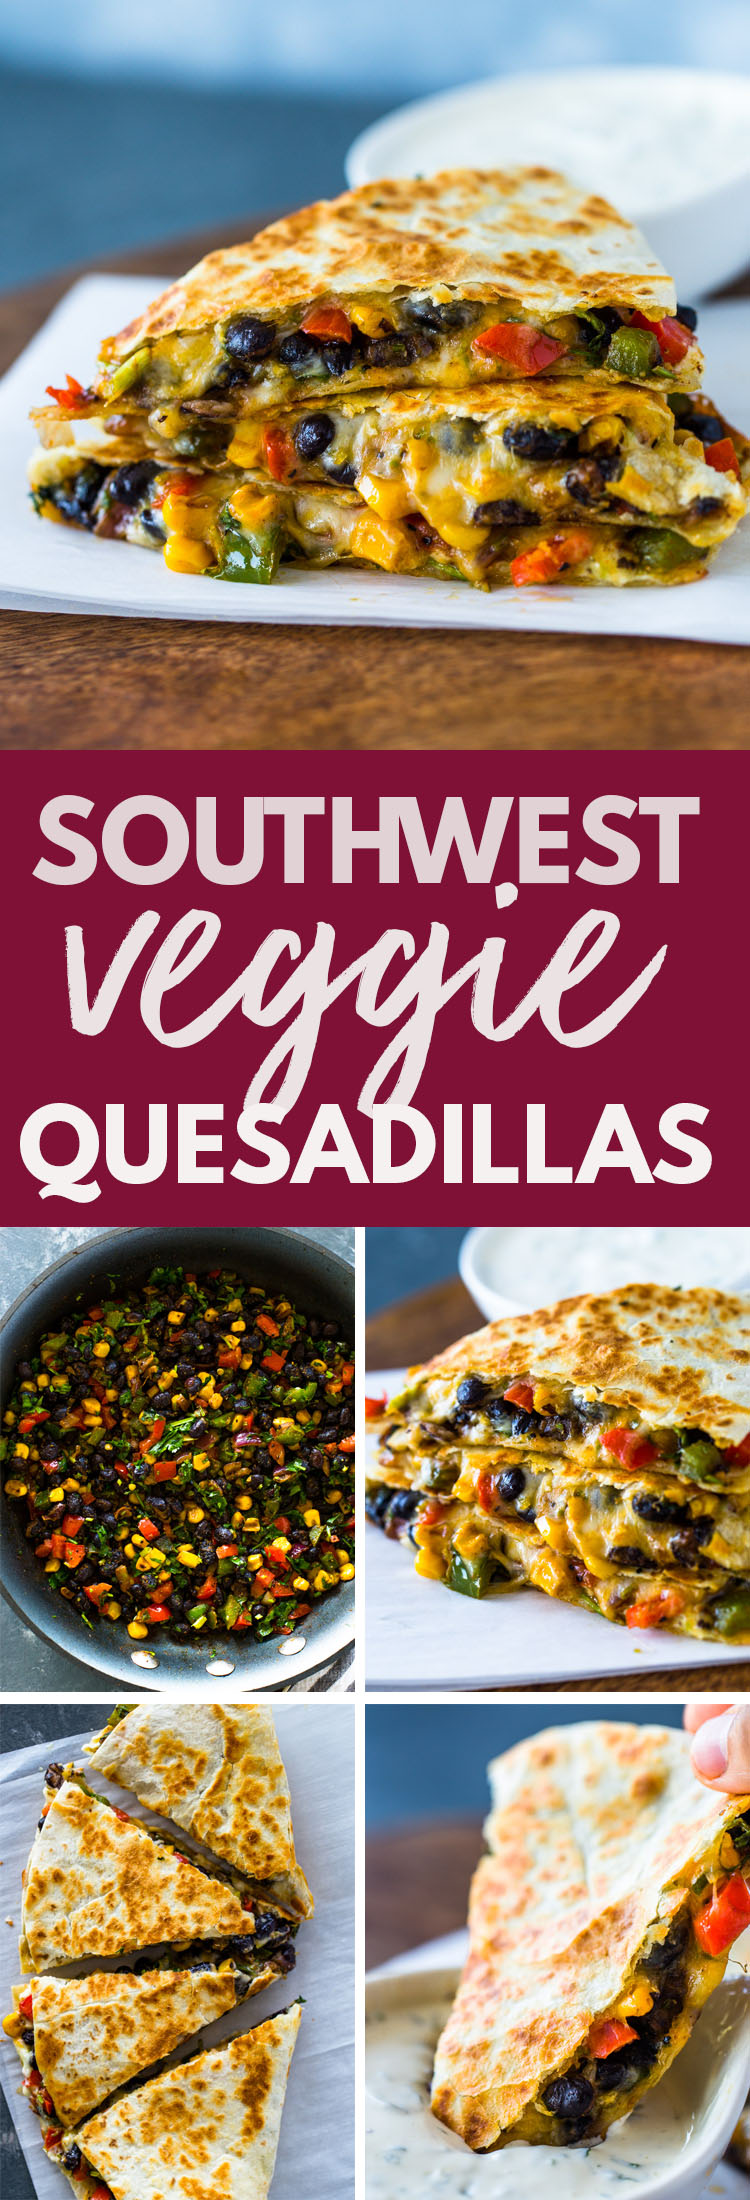 Southwest Veggie Quesadillas Gimme Delicious